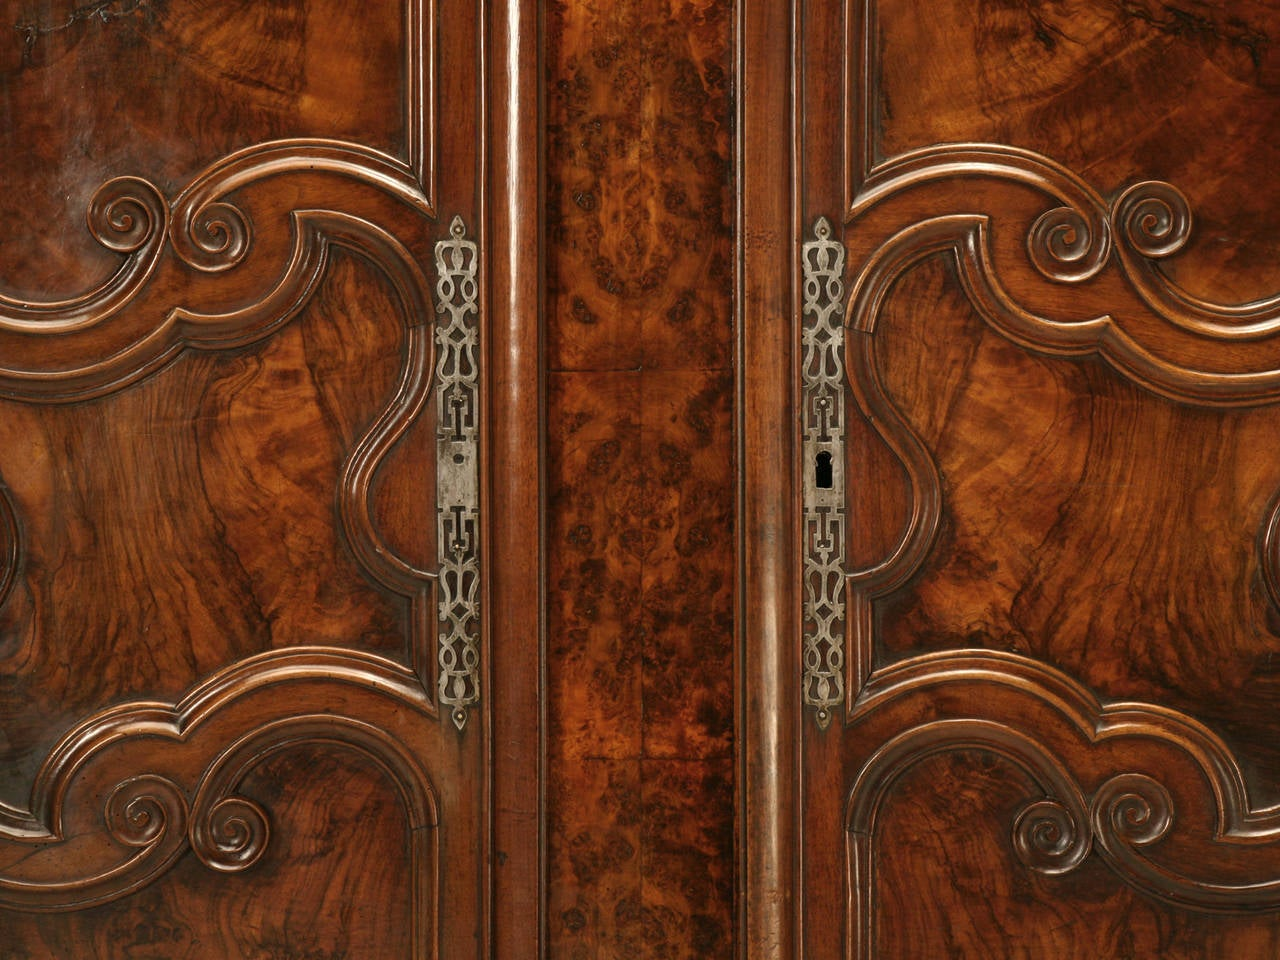 Armoire, French Burl Walnut in the Style of Louis XV Painted and Gilded Hinges 1